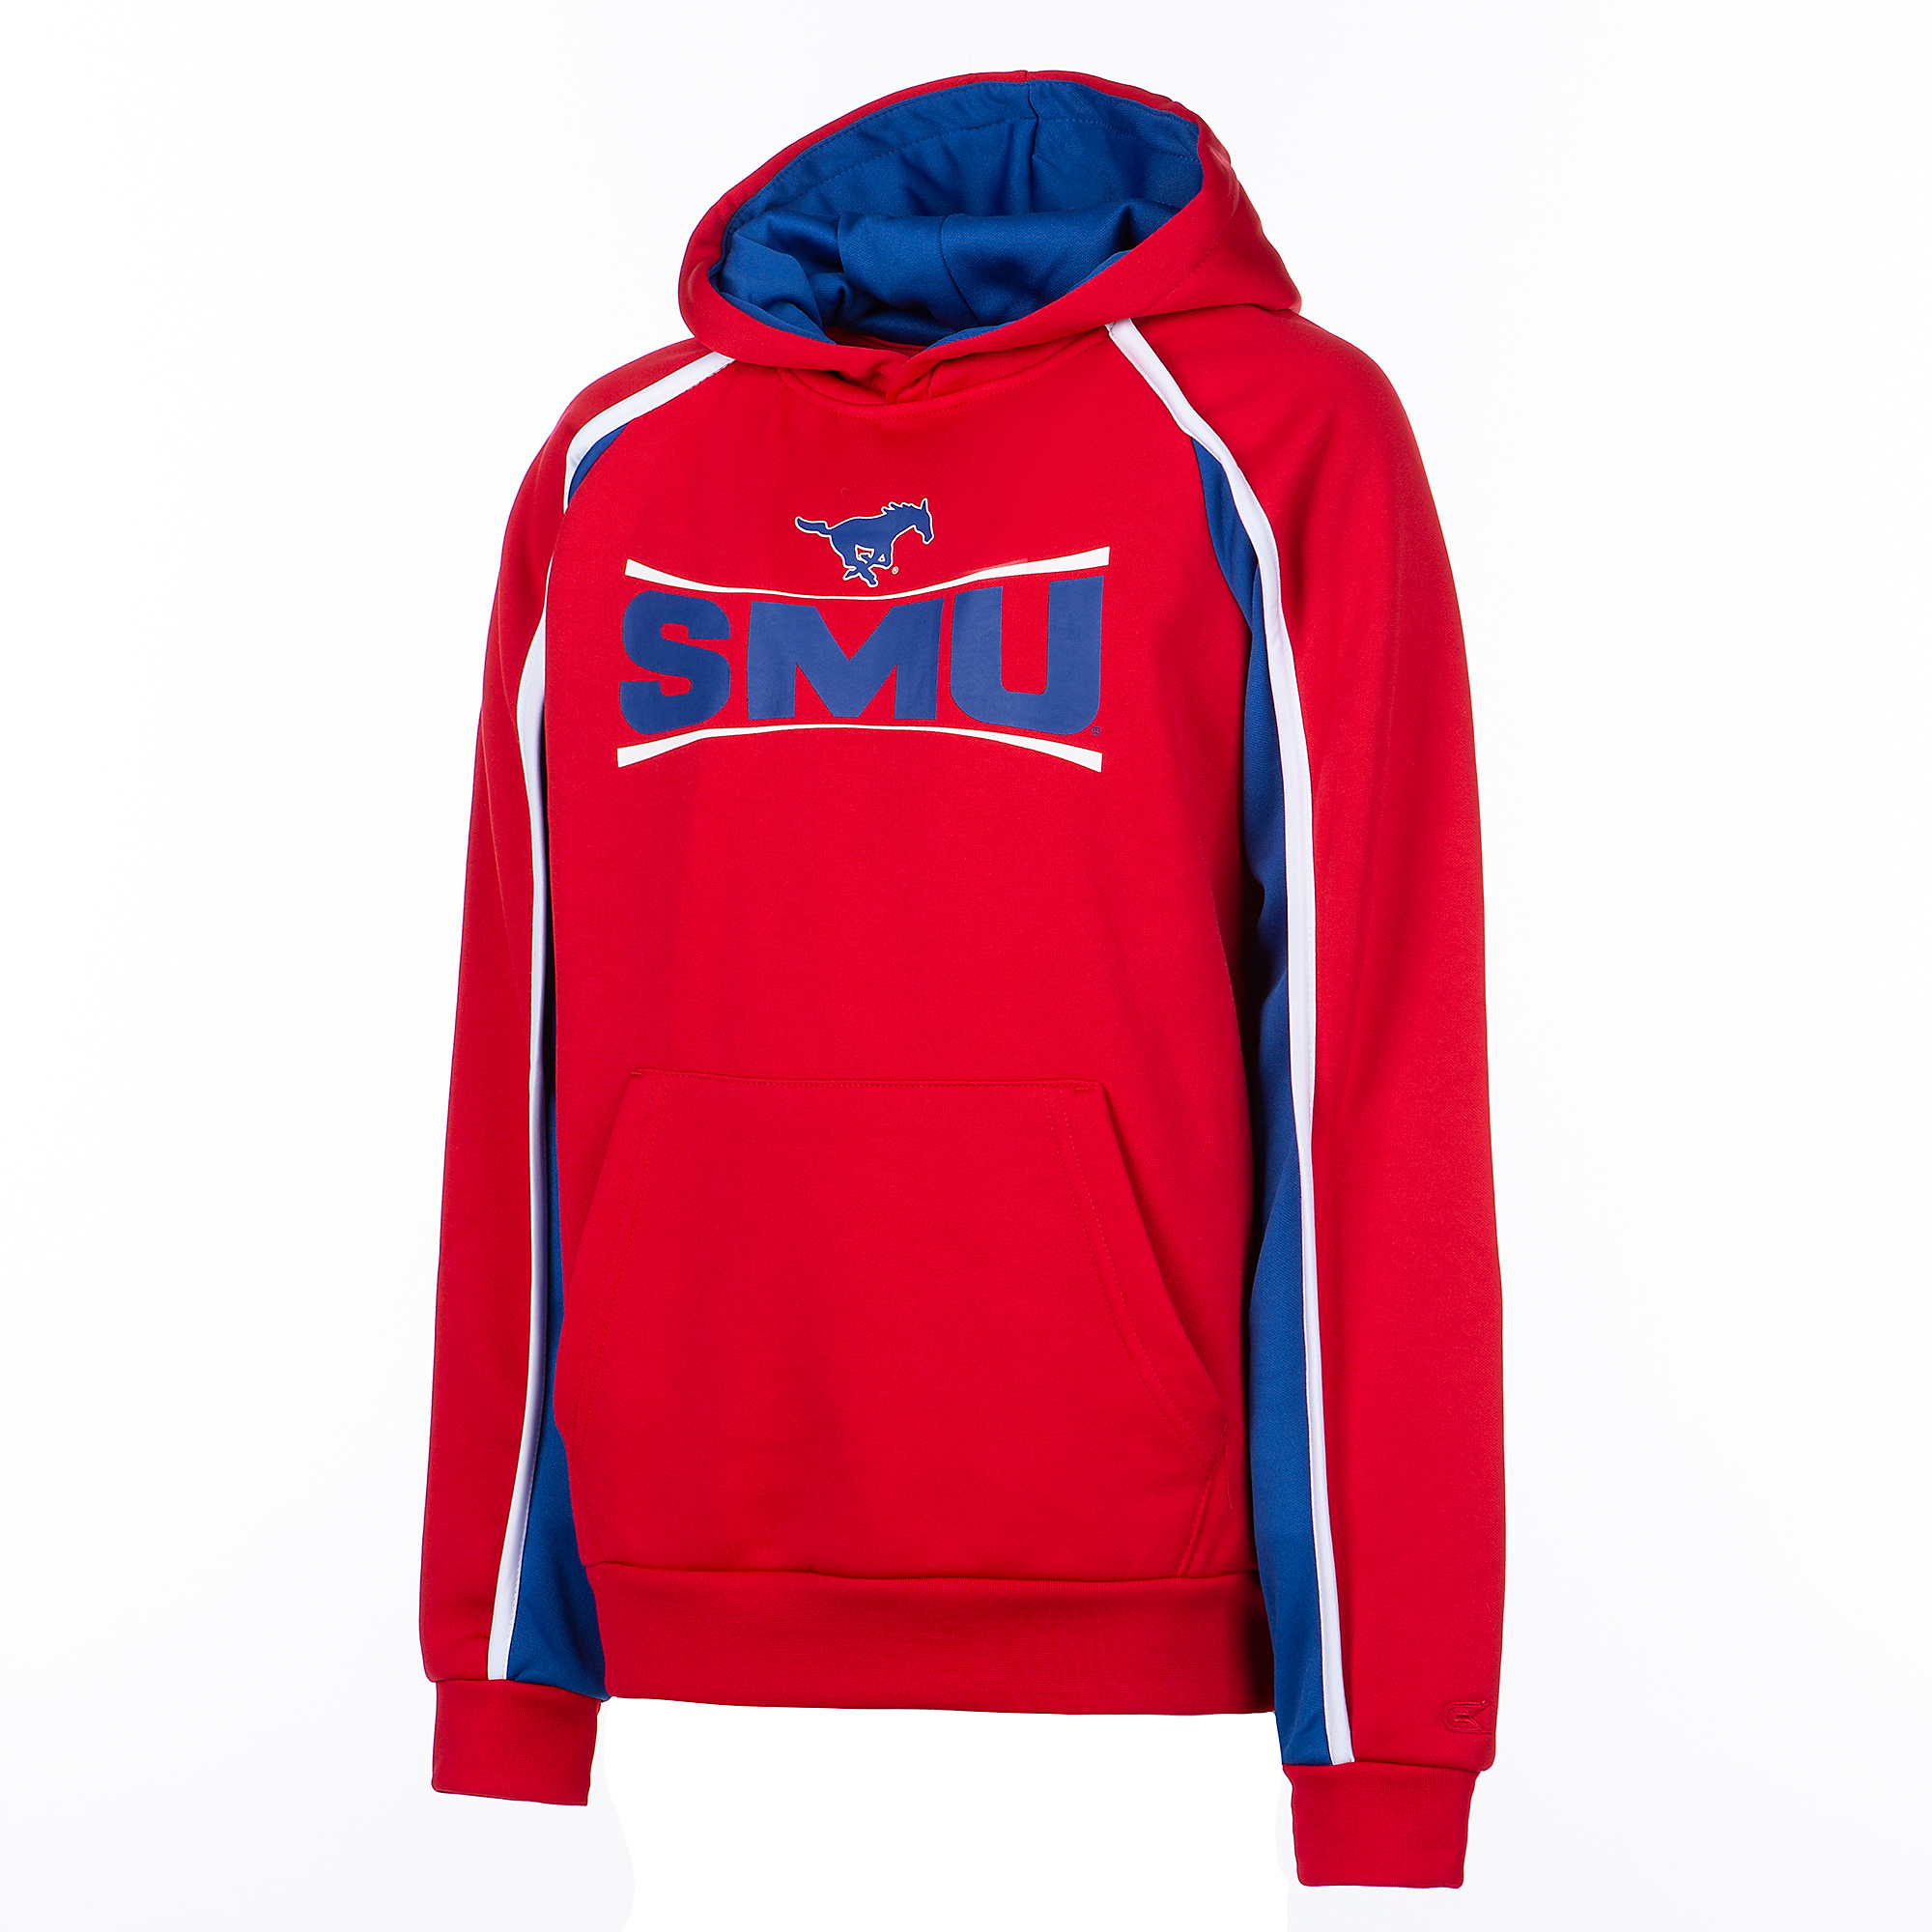 SMU Mustangs Colosseum Youth Hook and Lateral Pullover Hoody